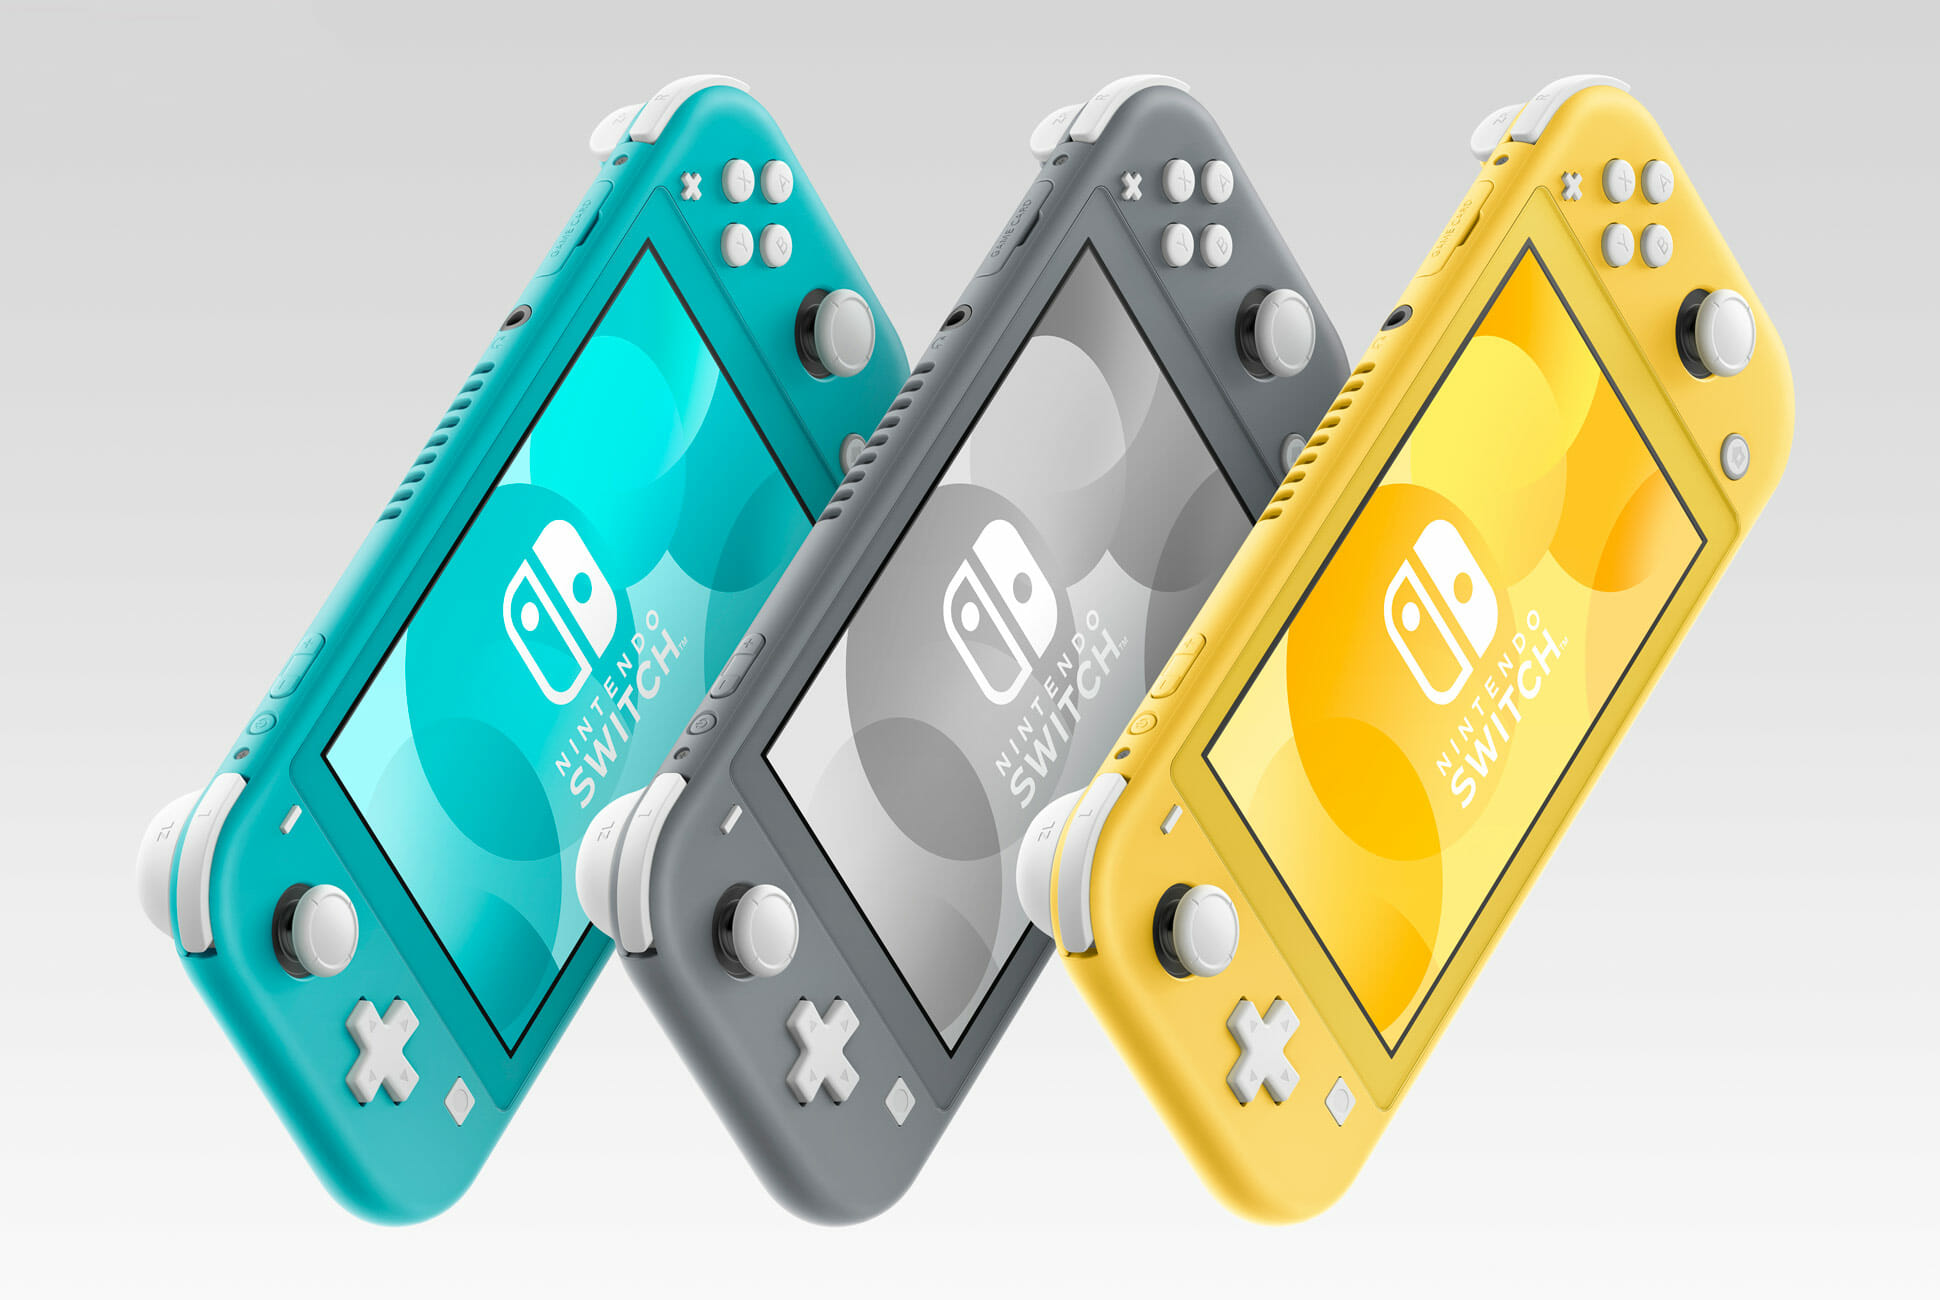 The Switch Lite has nearly outsold the Wii U on its own screenshot